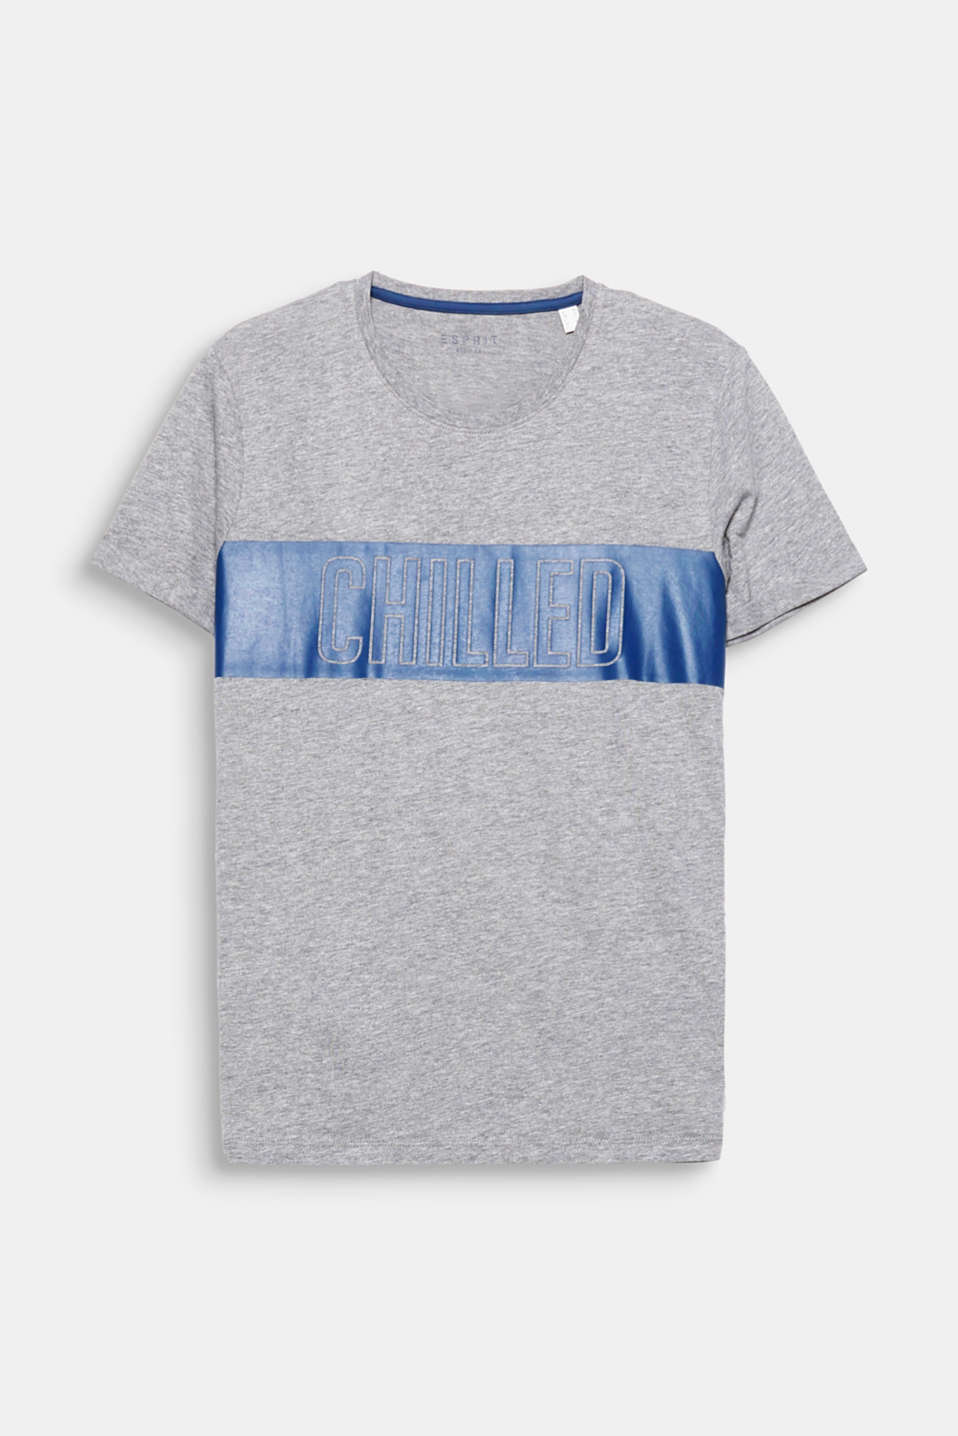 Chilled! One print, one statement – on this T-shirt made of a fine cotton blend.